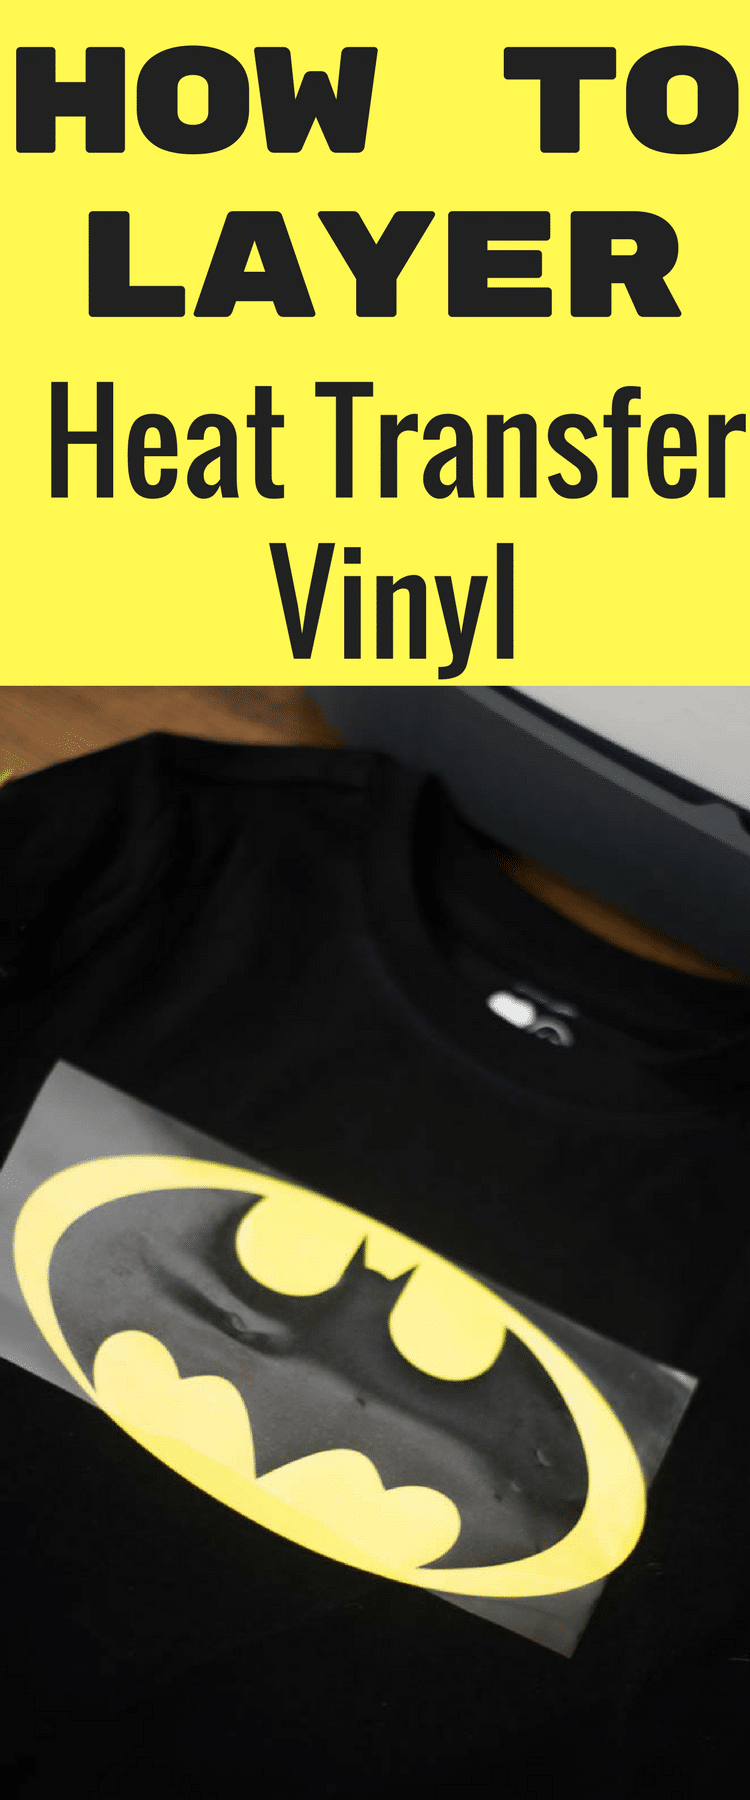 how to layer heat transfer vinyl cricut design space / cricut tips / cricut designs / vinyl / iron on vinyl / cricut explore air / cricut maker